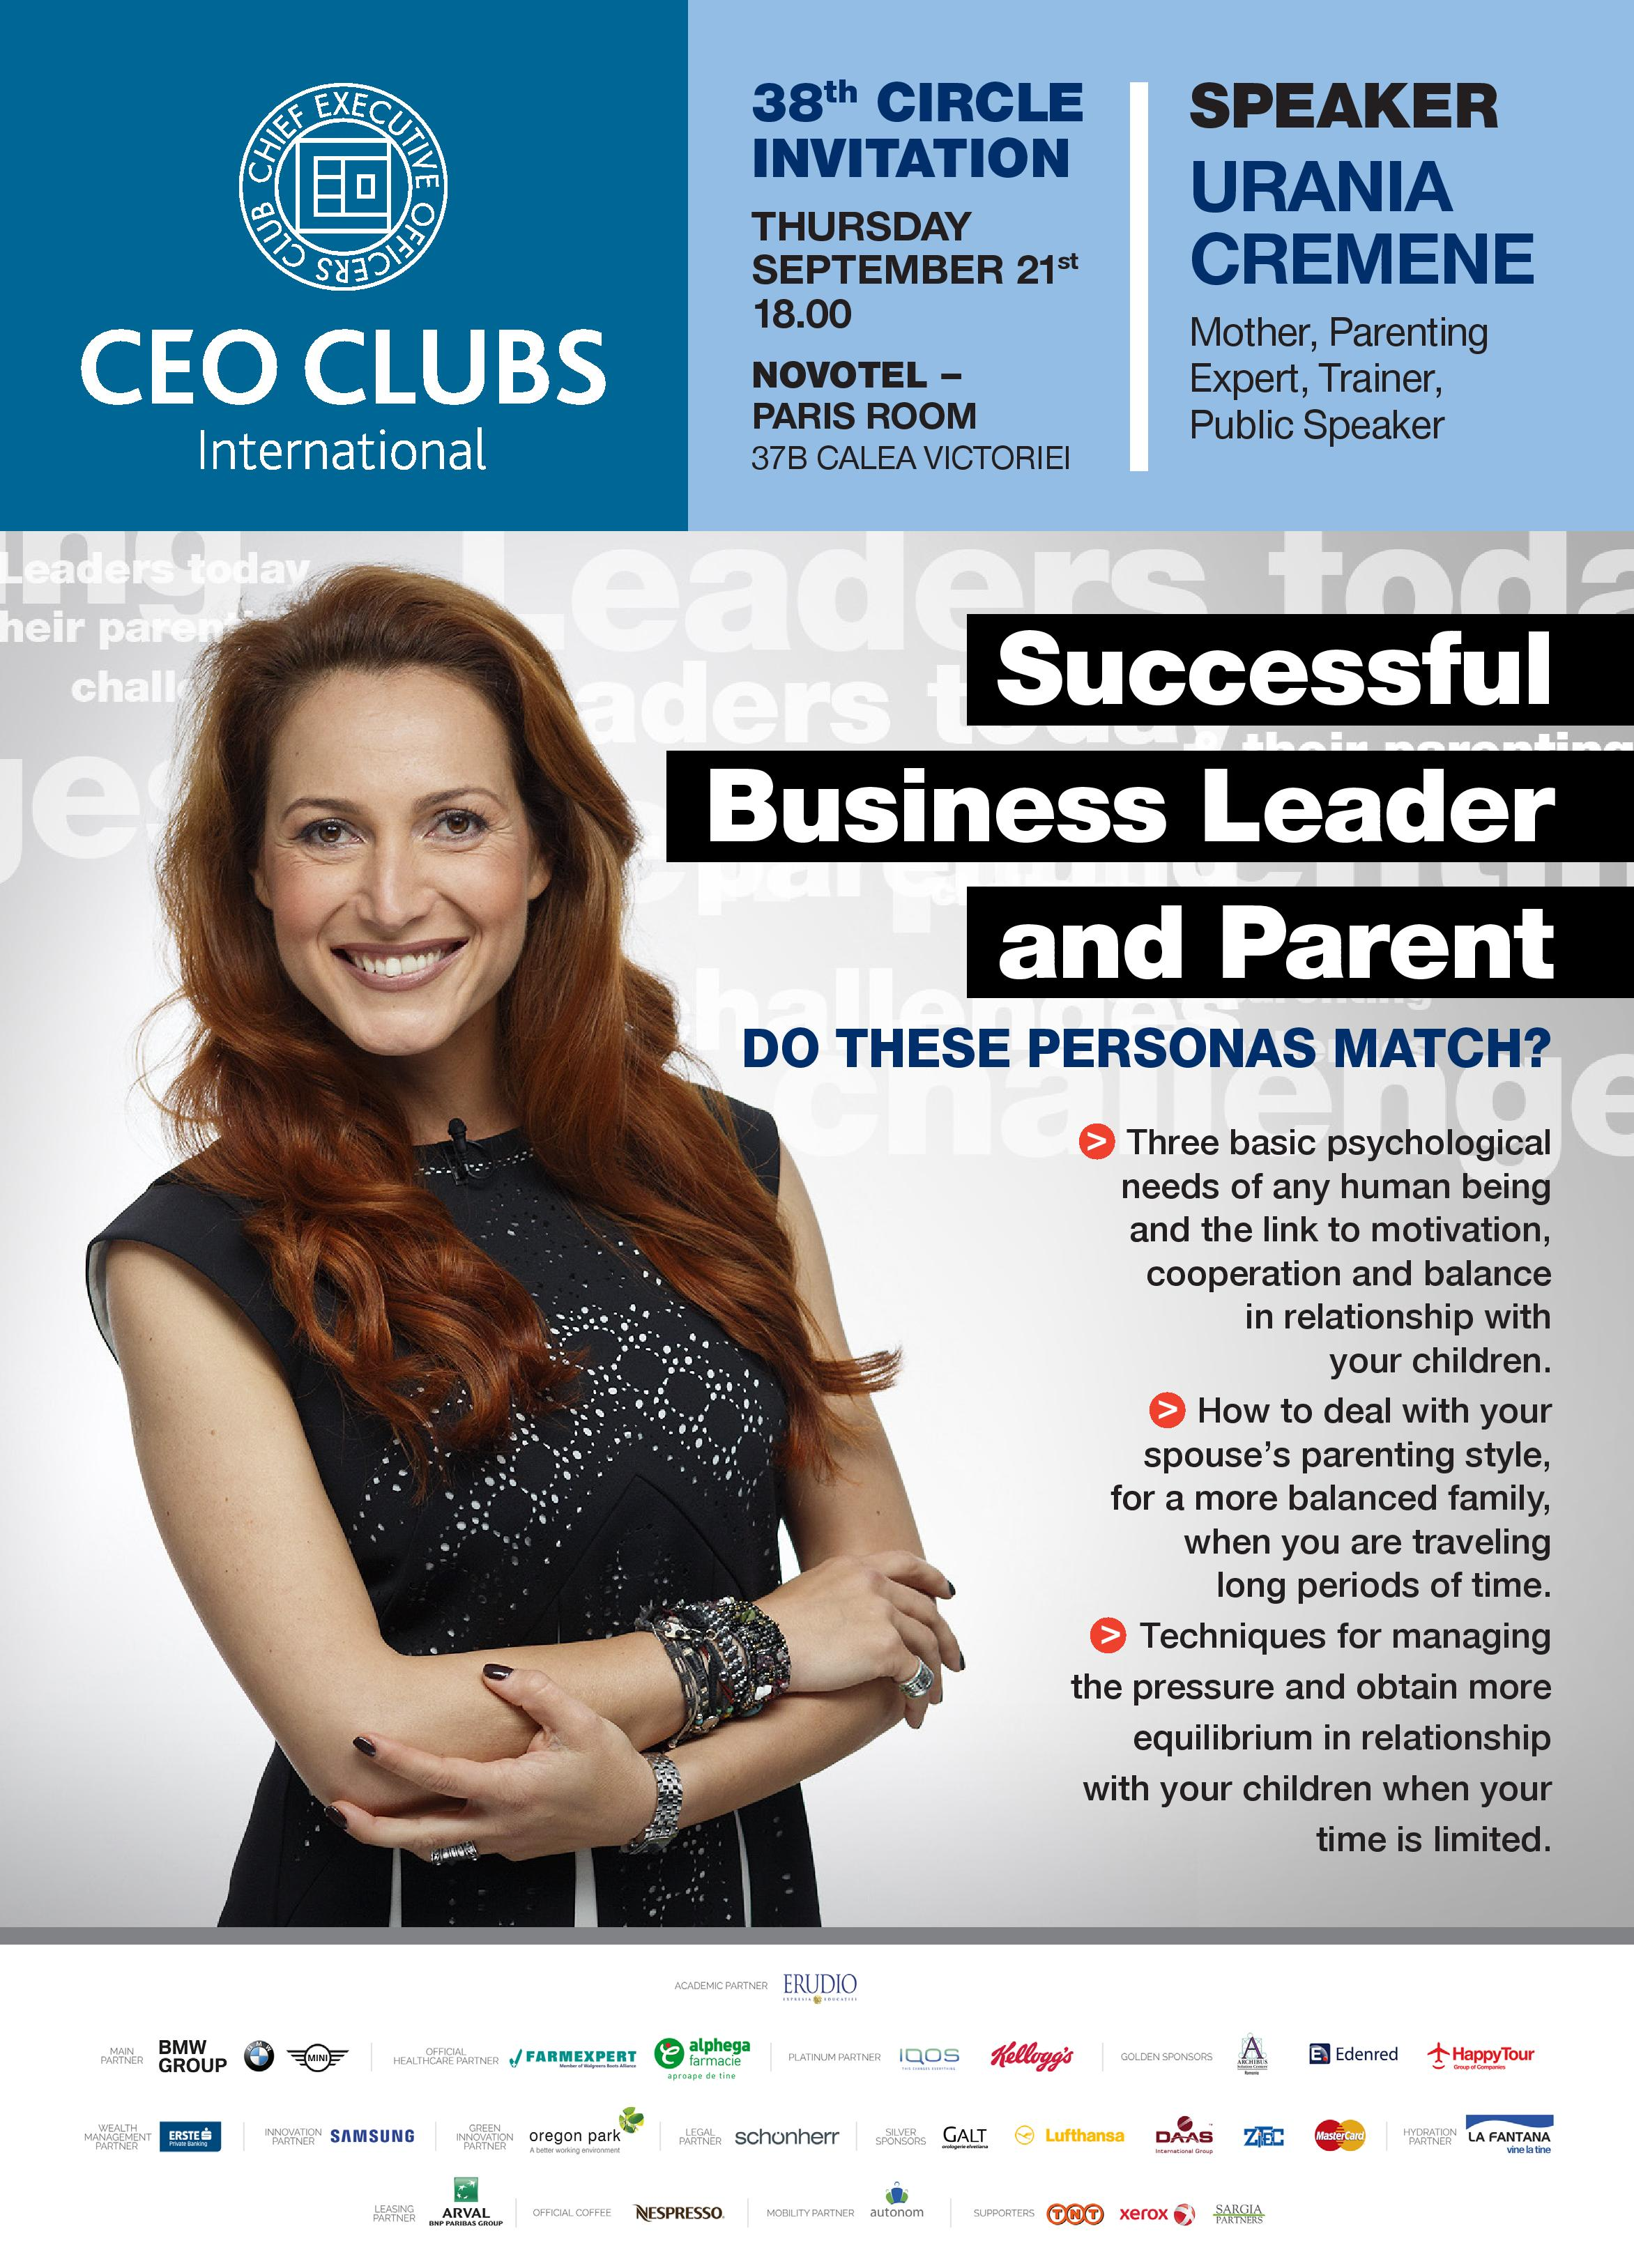 The 38th Circle: Successful Business Leader & Parent